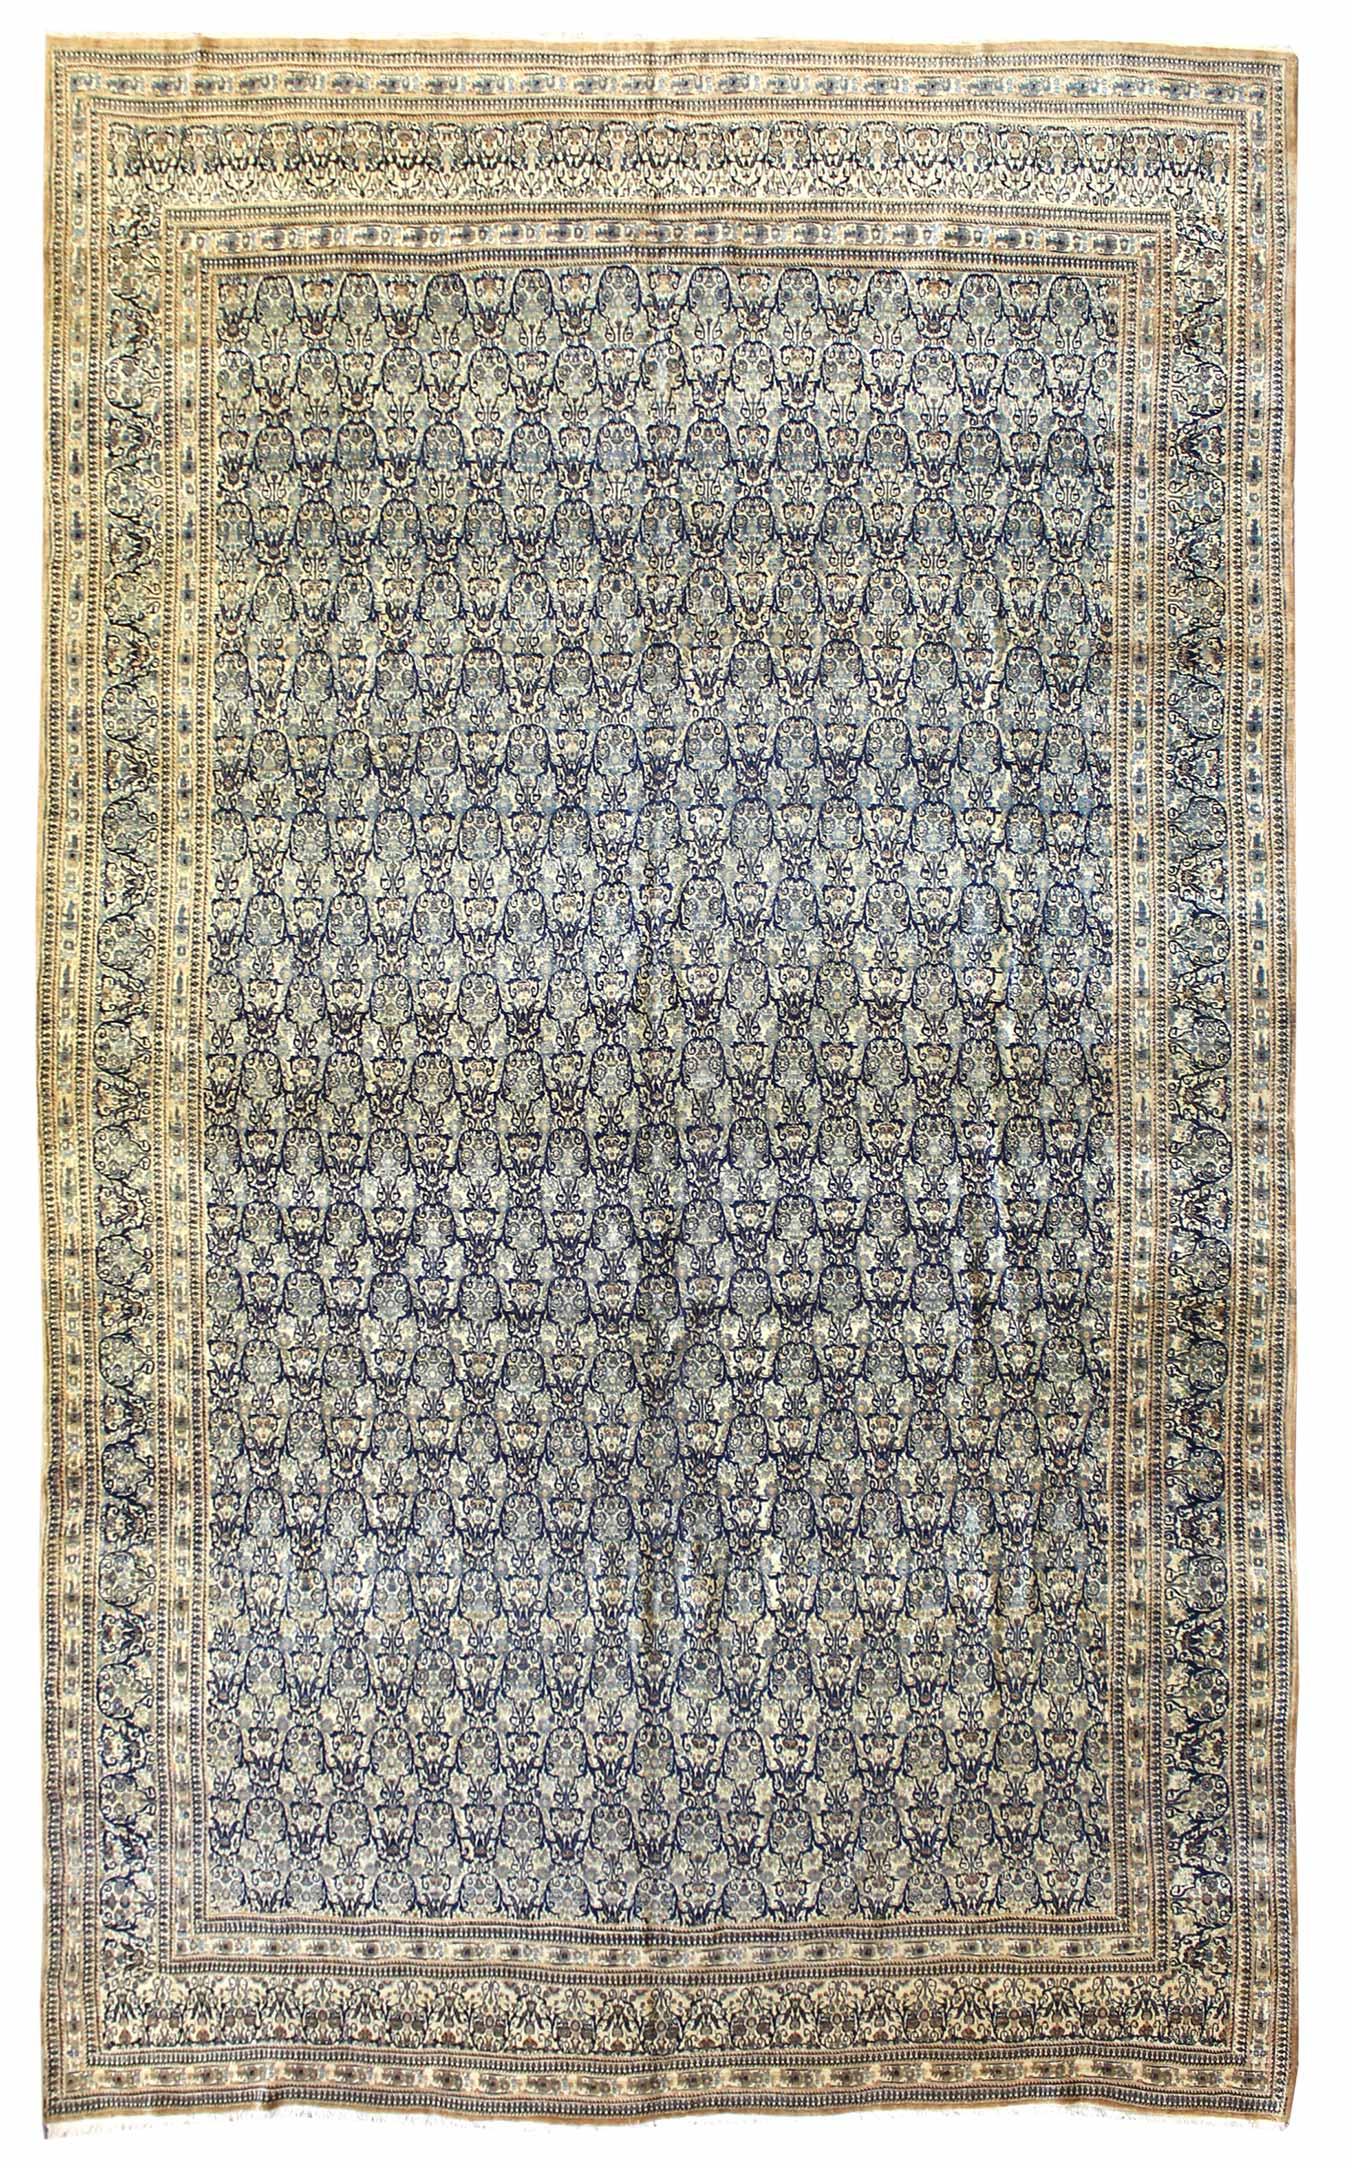 Antique Tehran Handwoven Traditional Rug